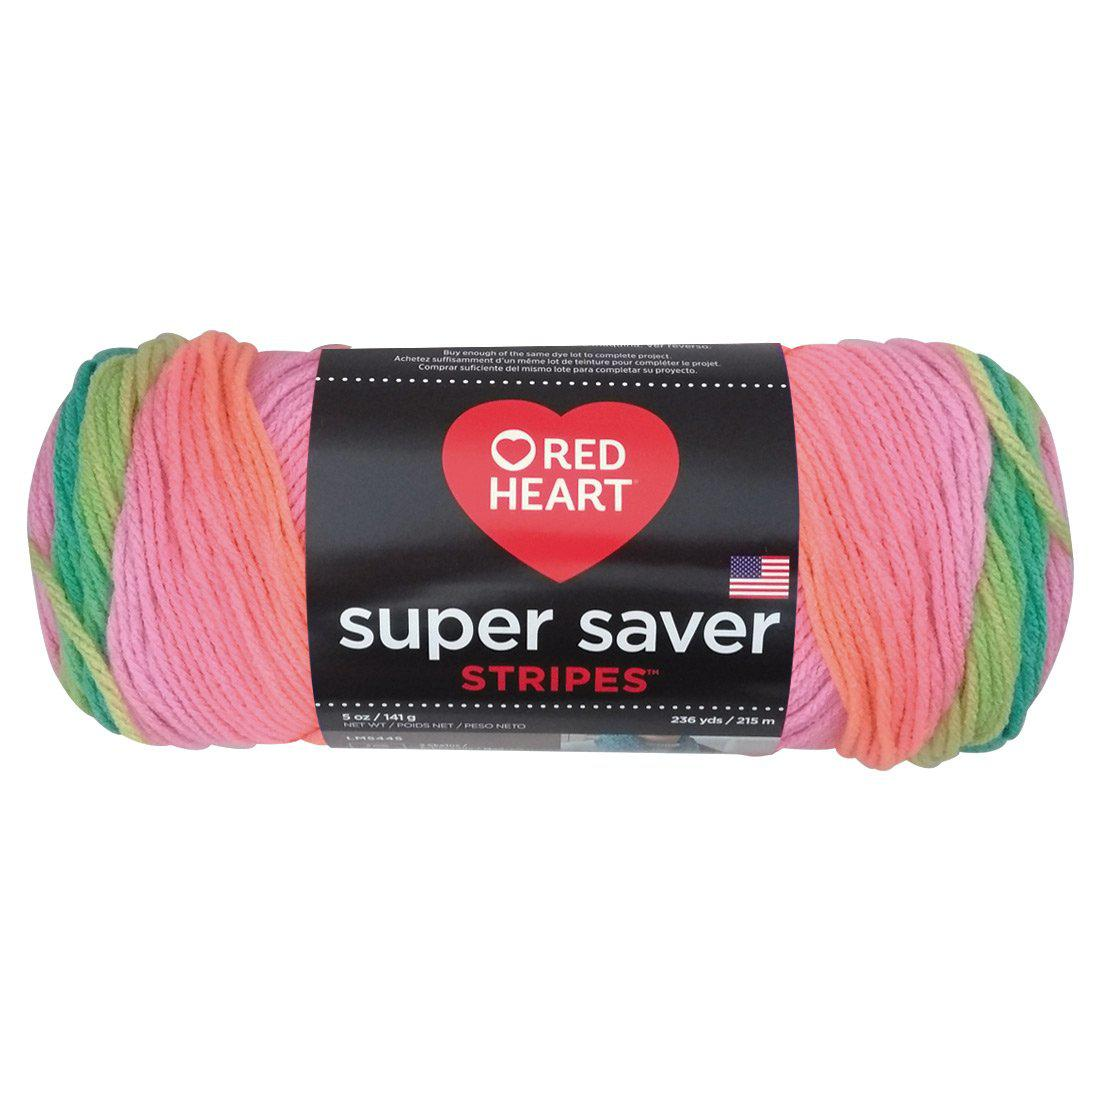 Estambre Super Saver Stripes, Mrca Red Heart, Madeja de 141